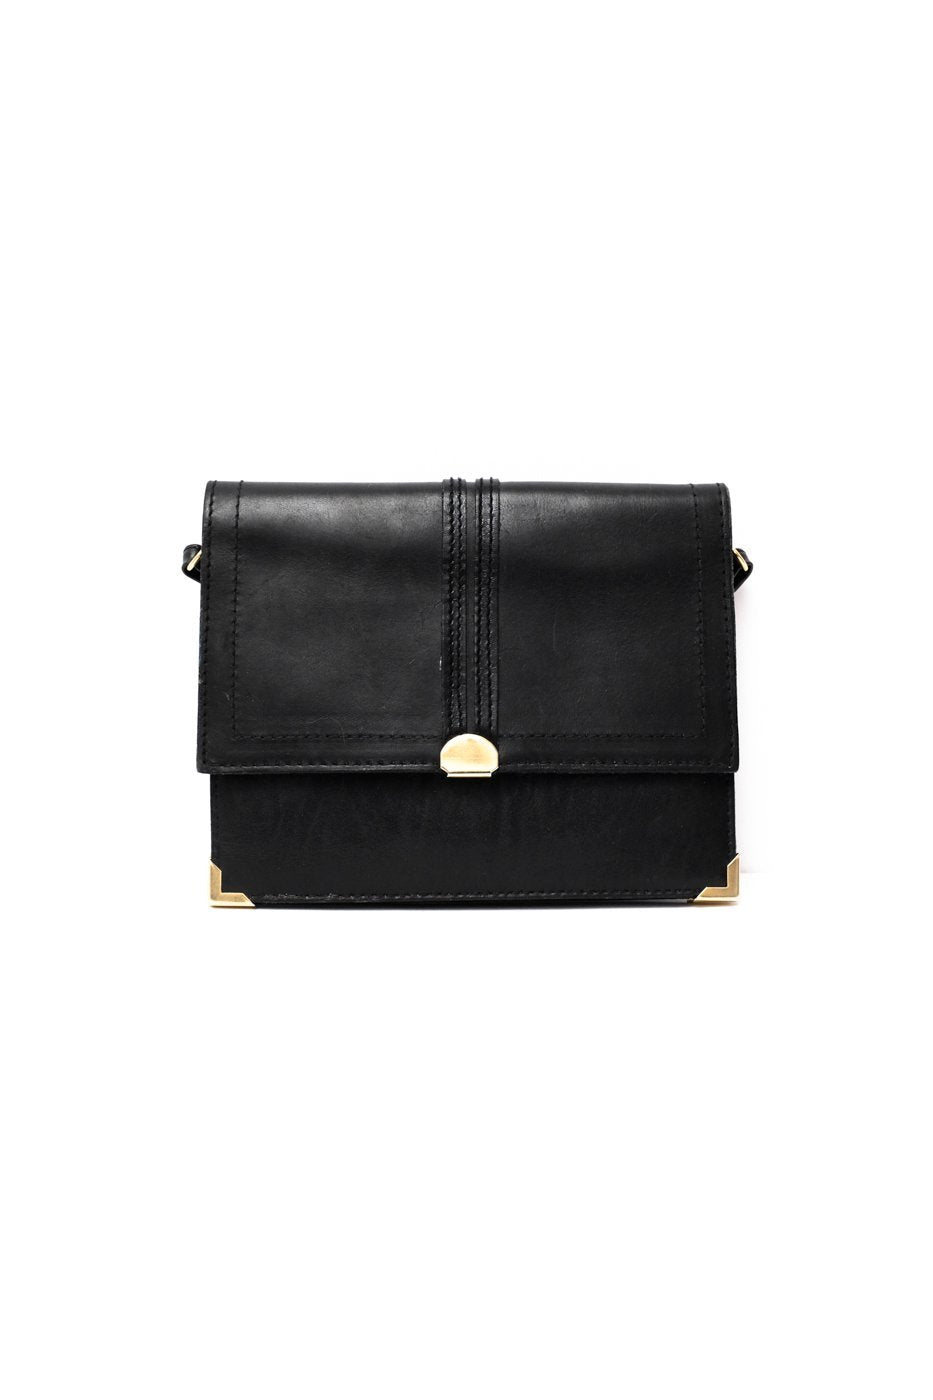 0074_VINTAGE SMALL BLACK CLEAN LEATHER BAG